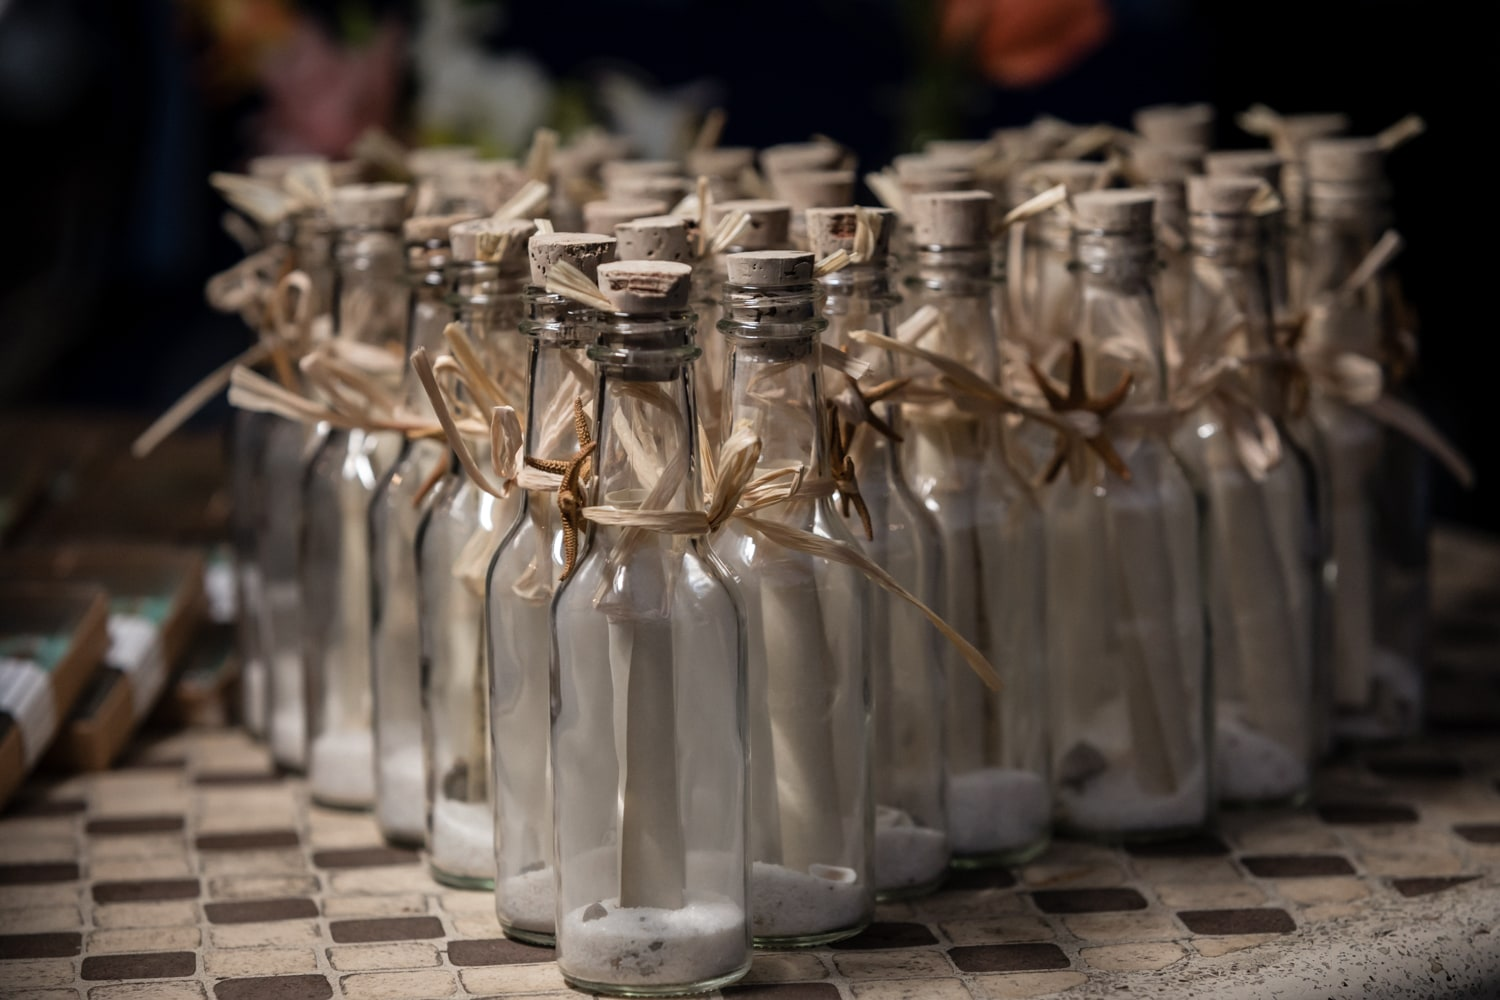 The bottles with a message inside are a unique wedding favor.